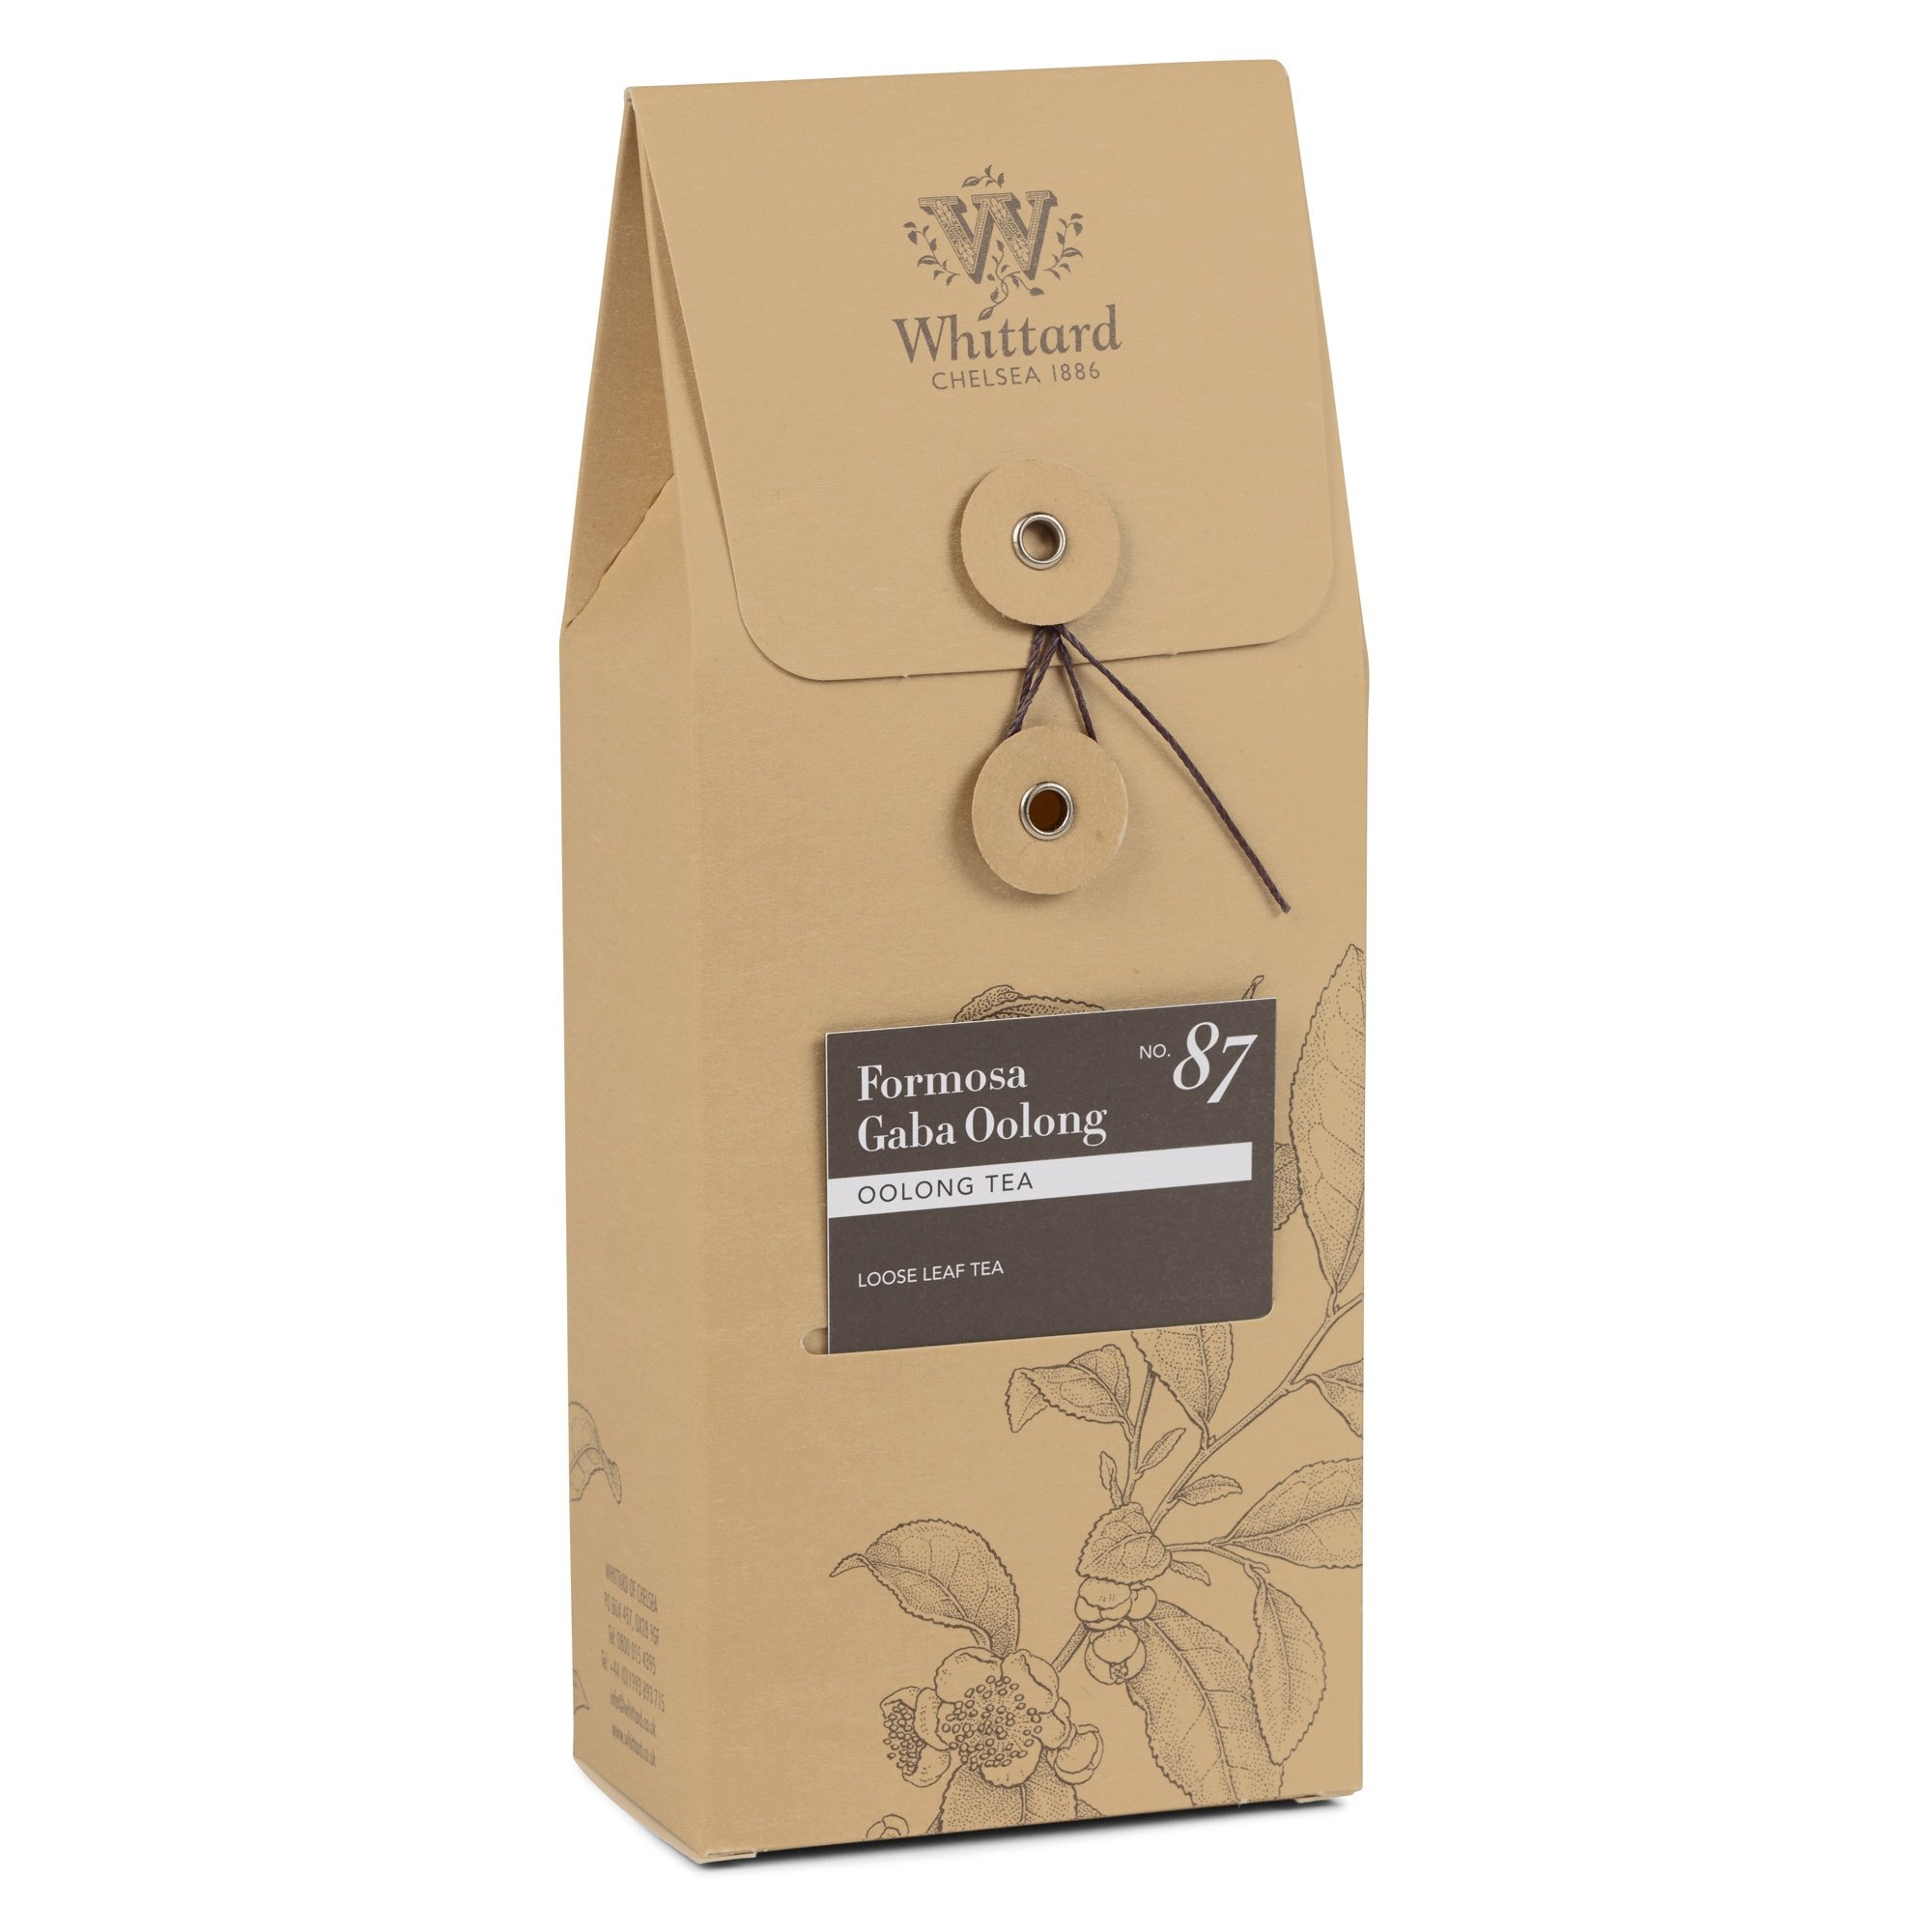 Whittard Tea Formosa Gaba Oolong Loose Leaf 50g by Whittard